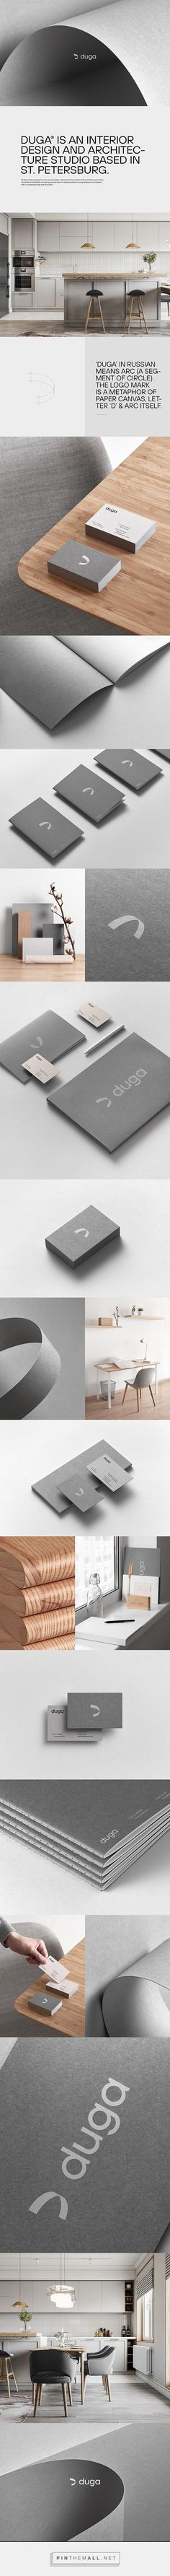 Duga is an interior design and architecture studio based in St. Grid System, Brand Identity Design, Ds, Manual, Typography, Design Inspiration, Branding, Graphic Design, Architecture